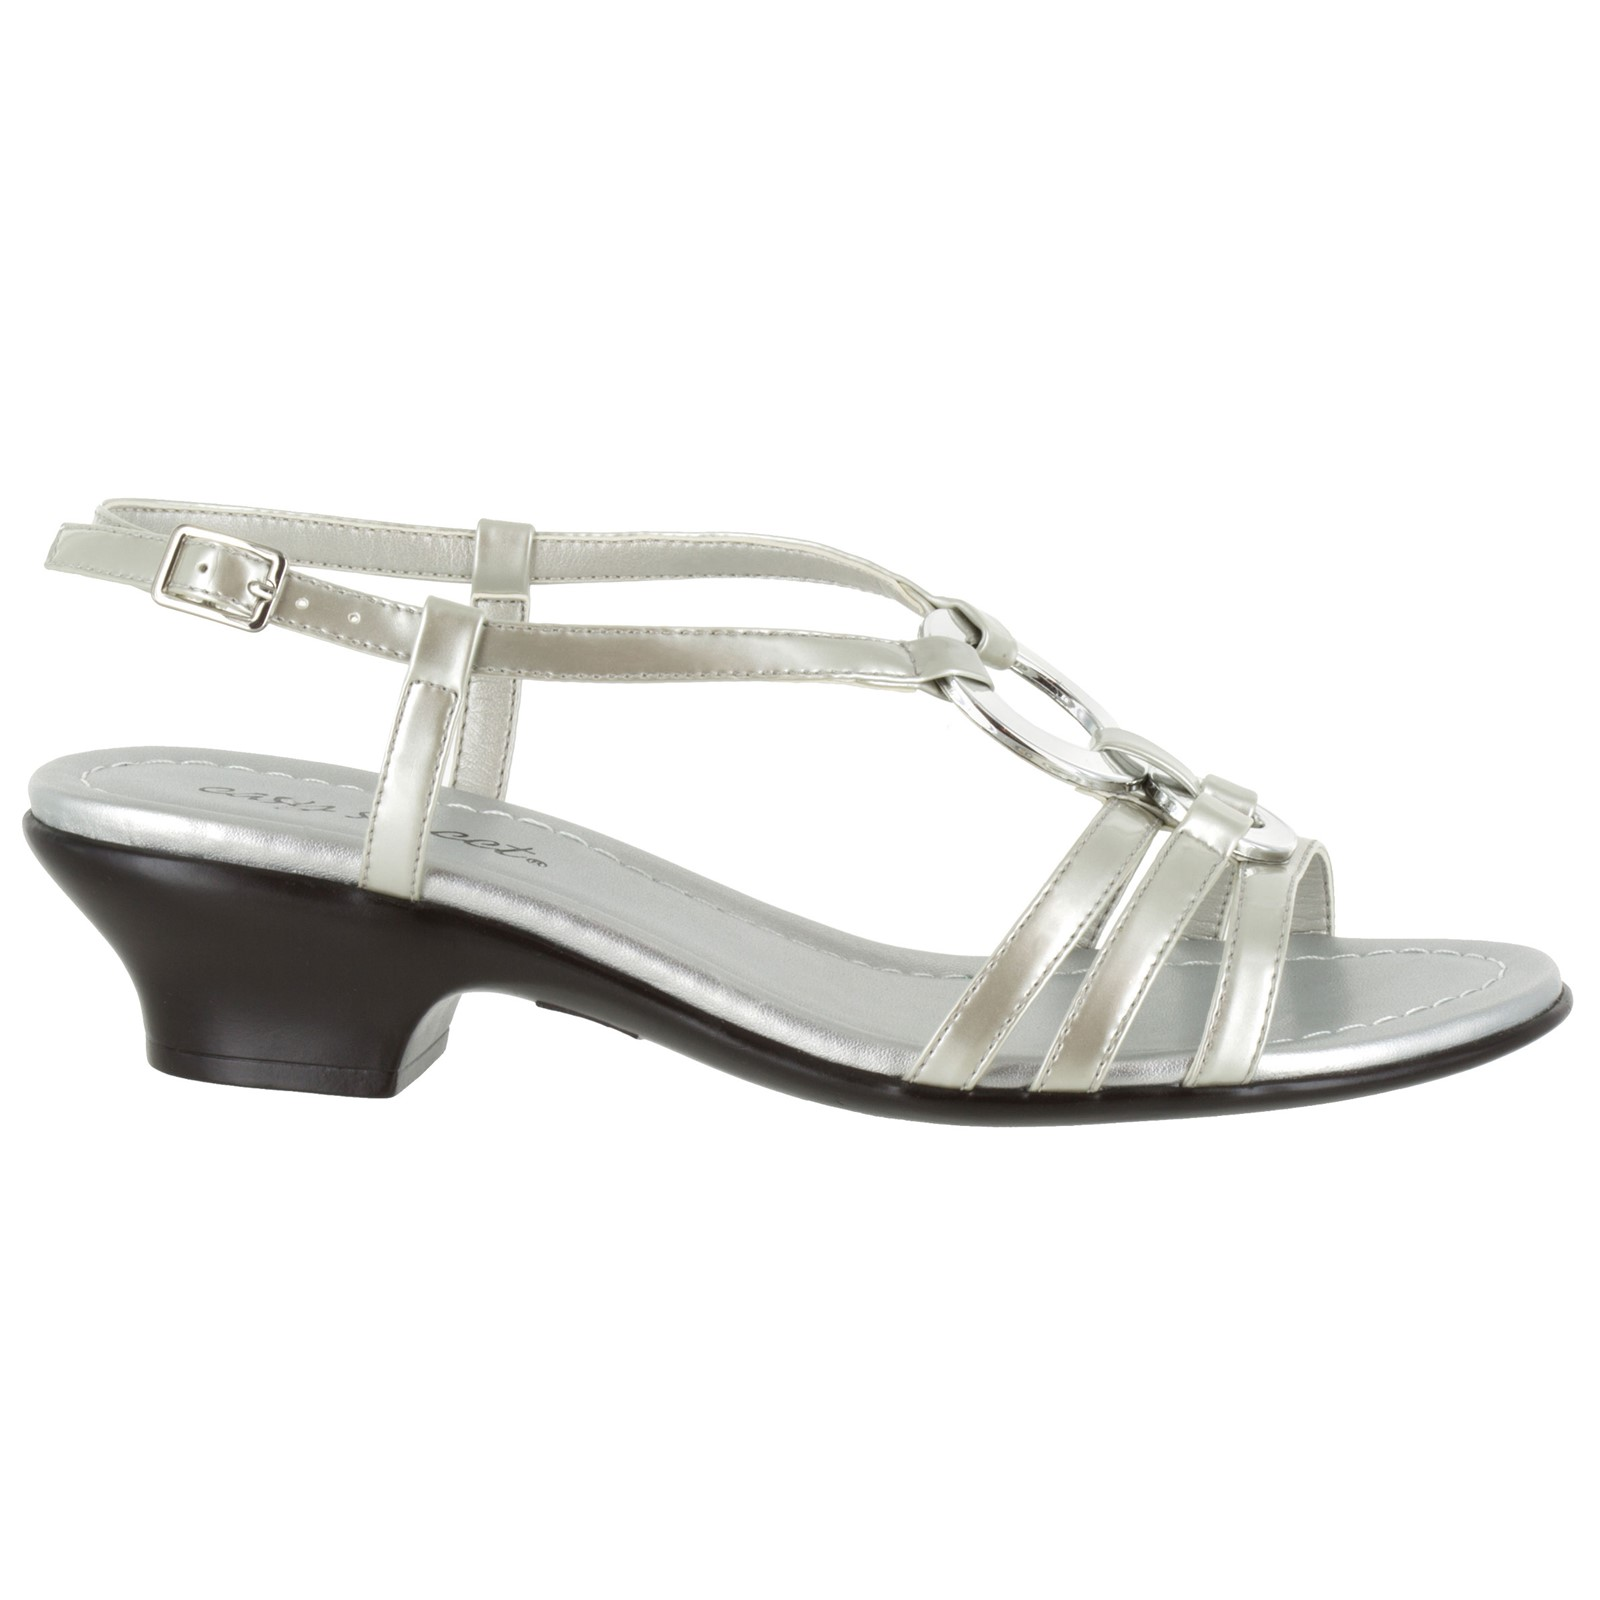 Women's Easy Street, Selena Low Heel Sandal